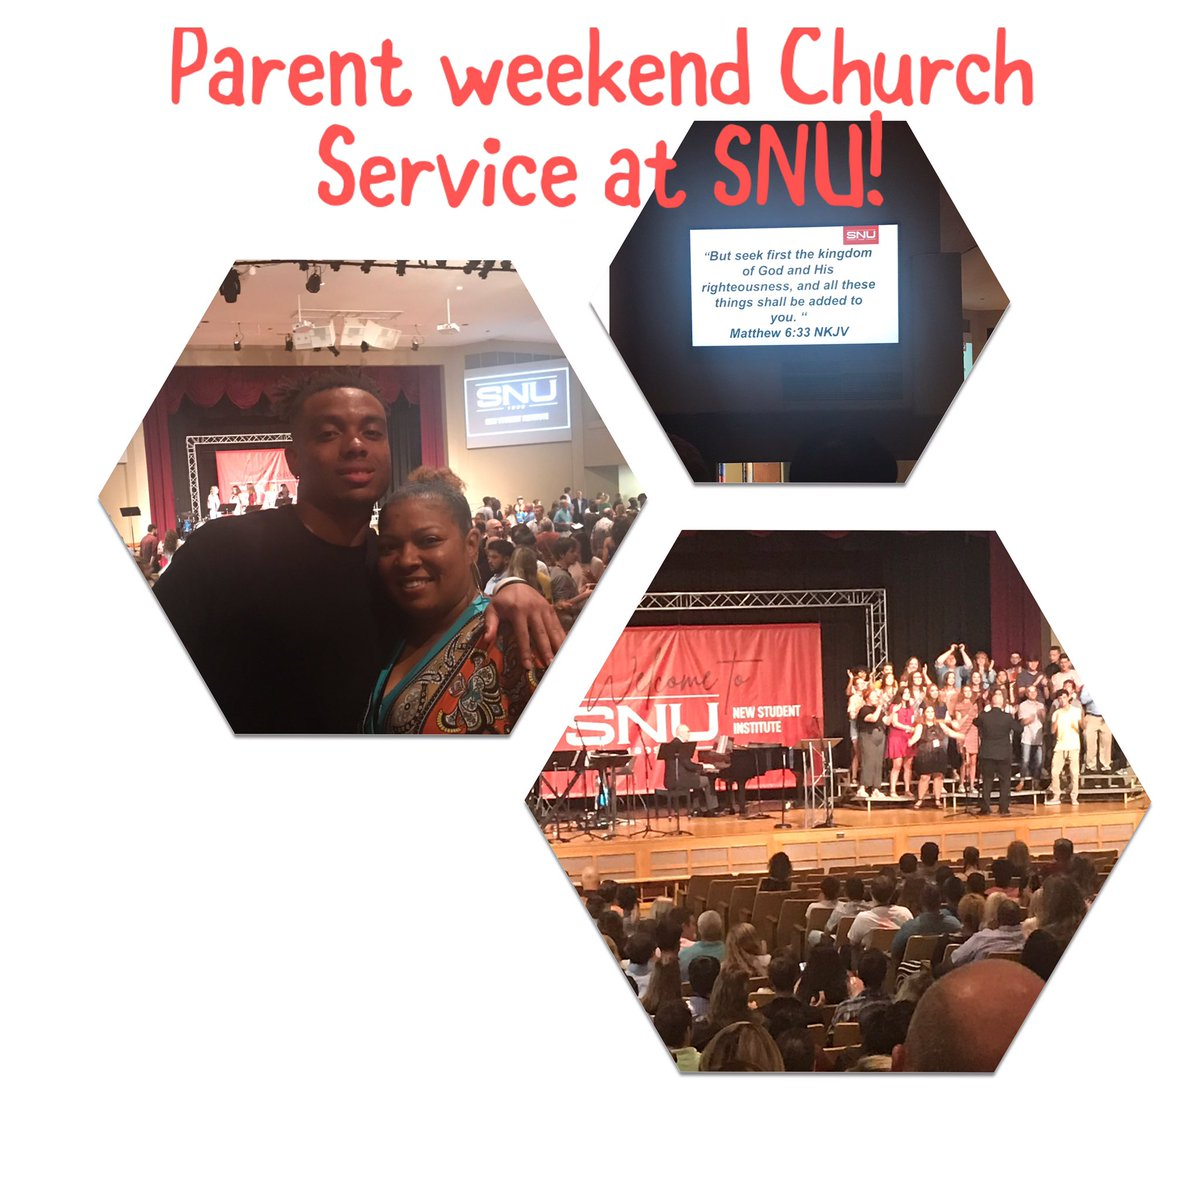 @TheNoahHaygood Really enjoyed Parent weekend @SNU was great! I'm going to miss my baby and I know he's in great hands here! #Godfirst @SNUFootball @SNUAthletics